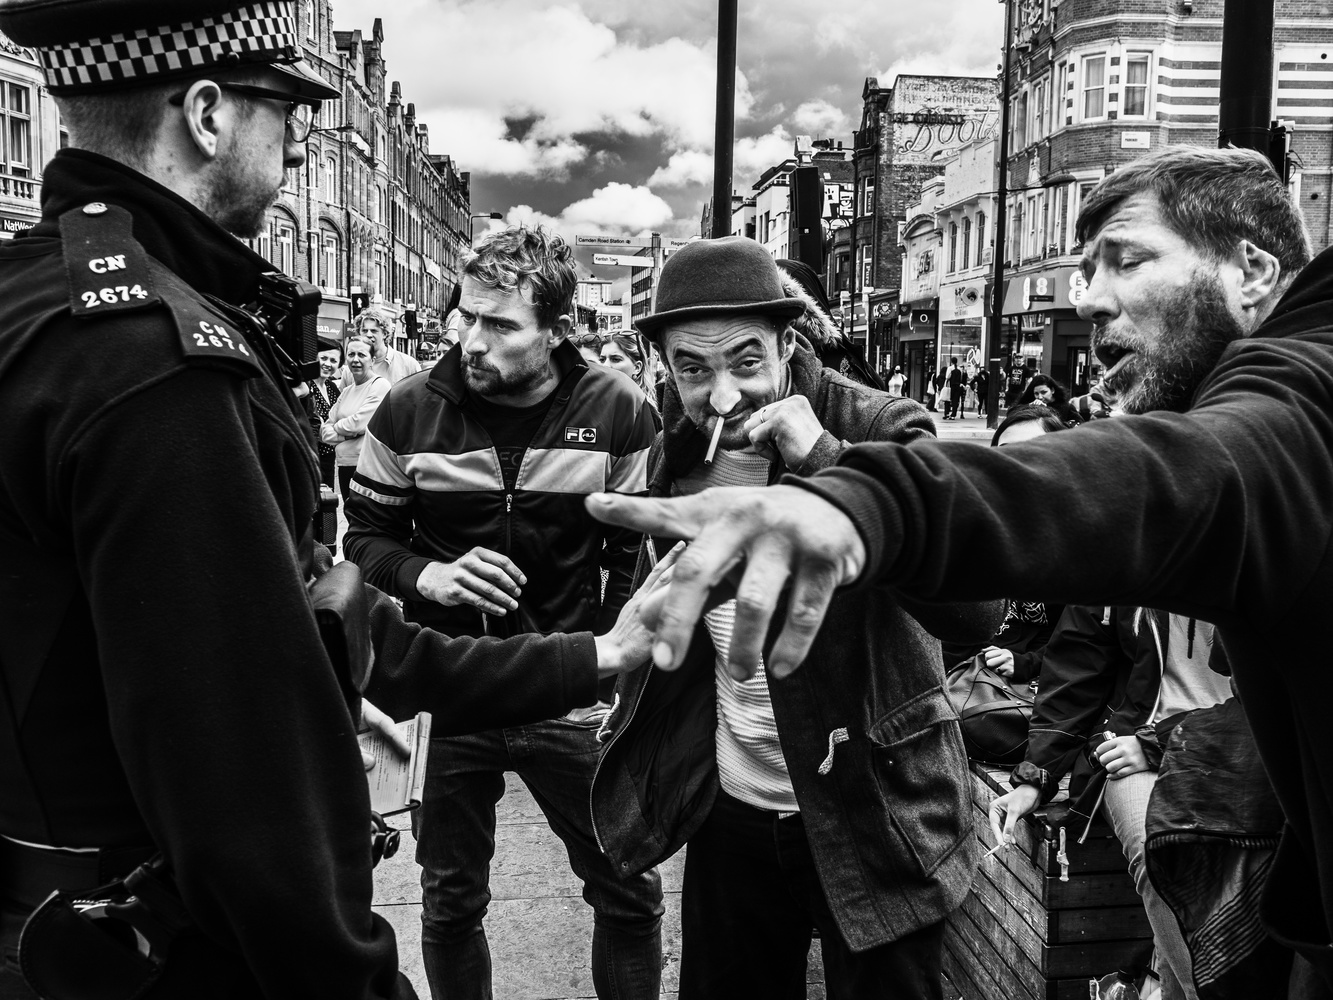 The Kings of Camden Town by Tomasz Kowalski